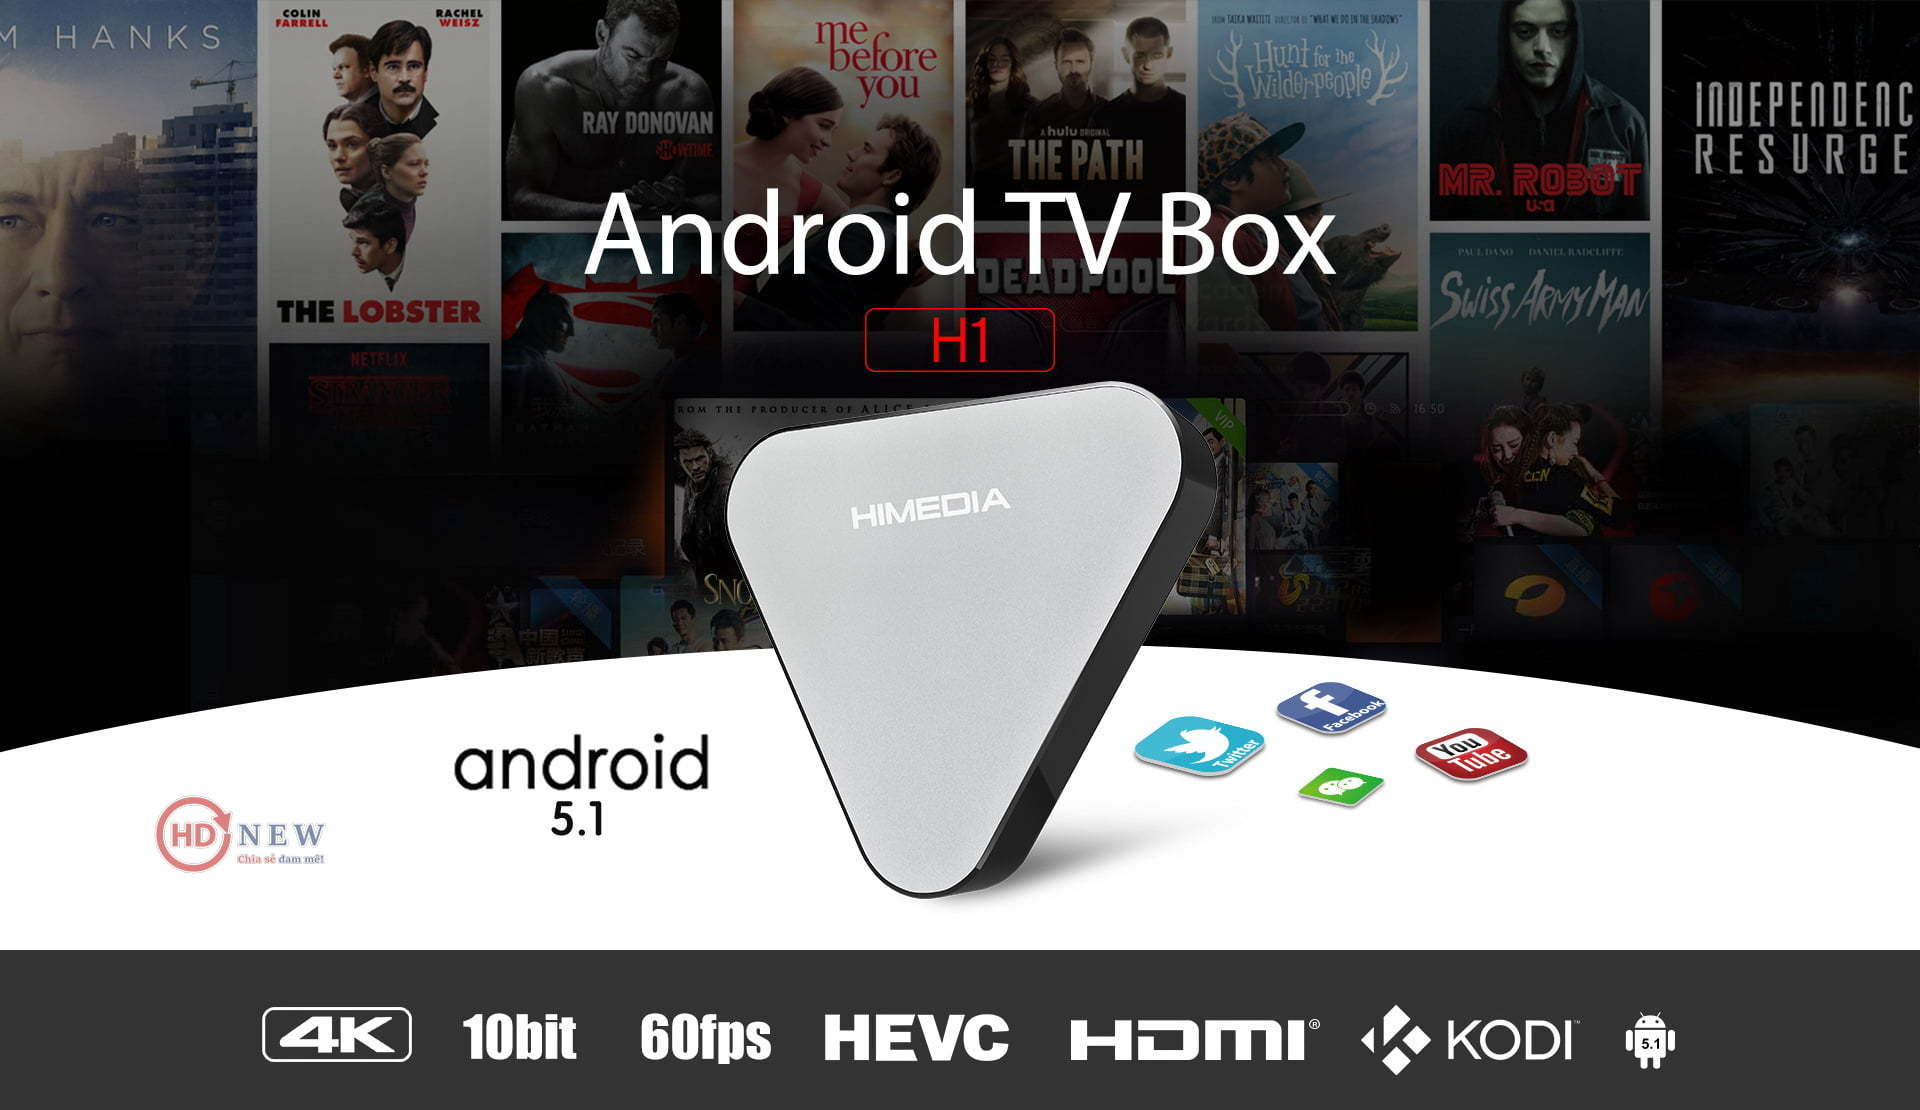 Android TV Box HiMedia H1 - HDnew Hà Nội